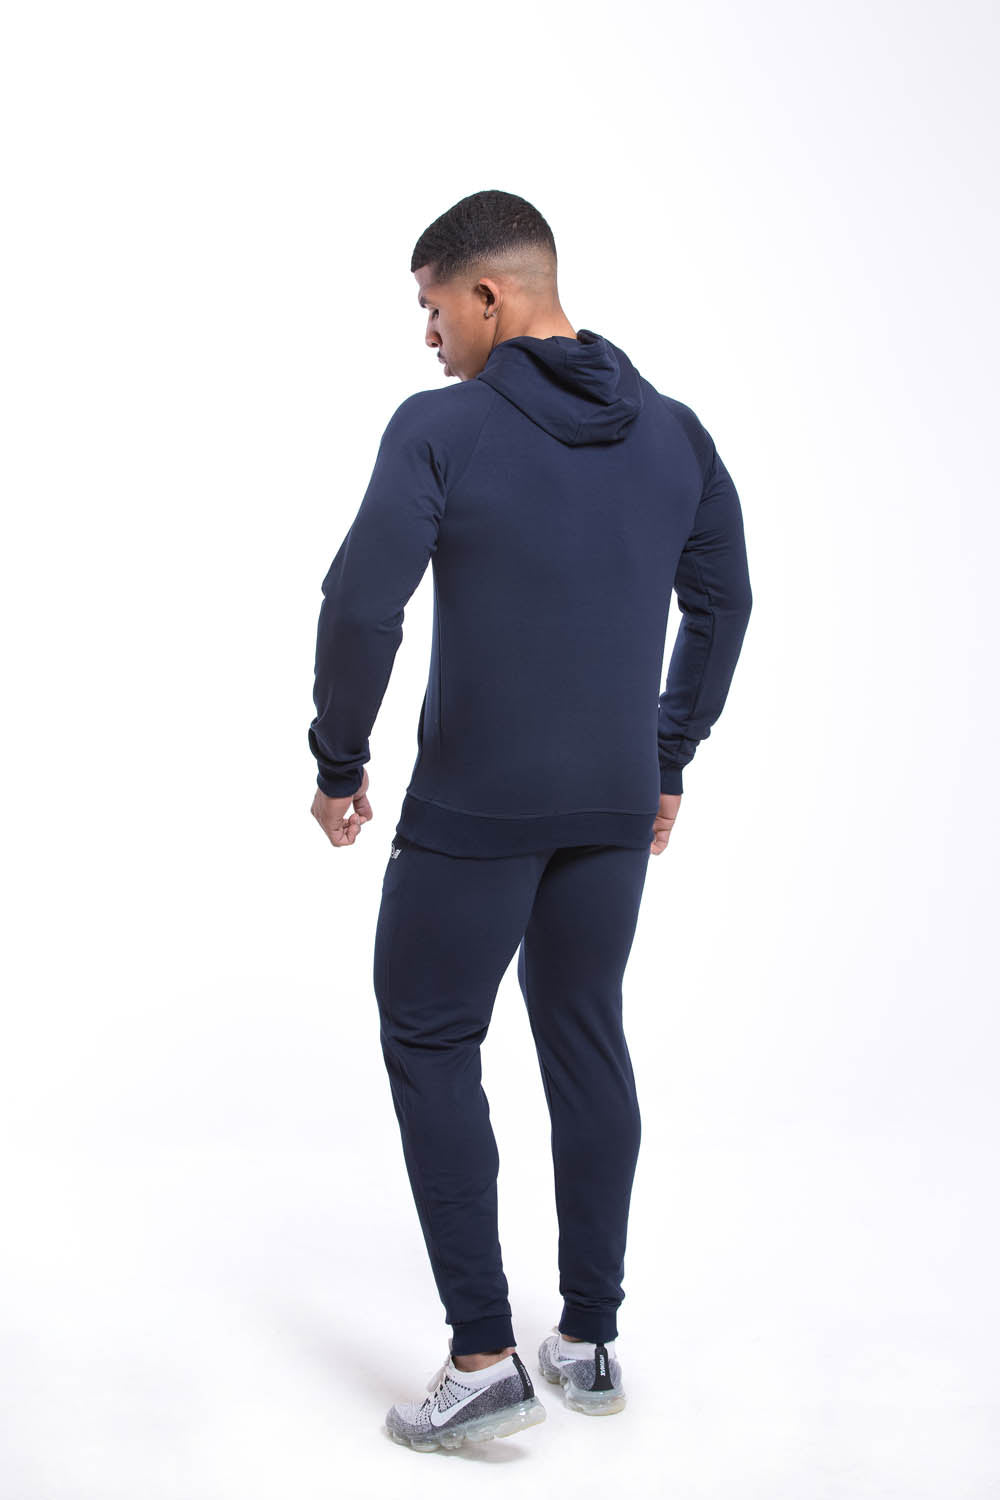 AKER Bottoms - Grey